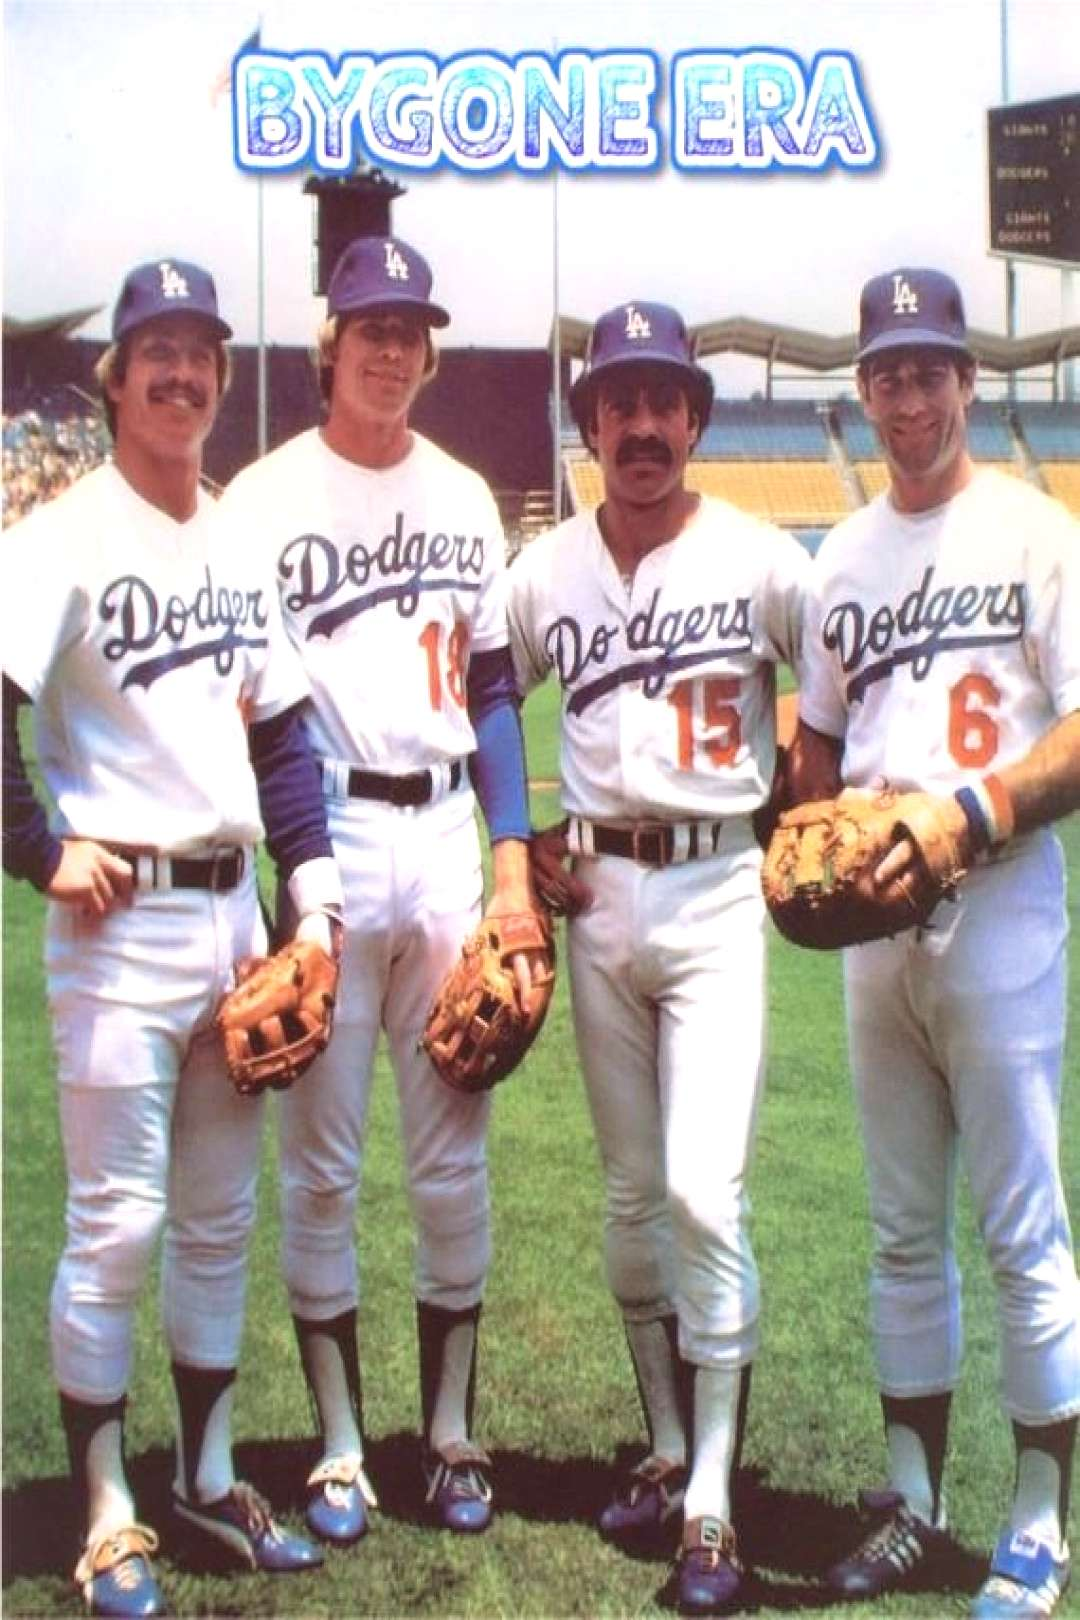 Los Angeles LA Dodgers 1970's Infield Cey Russell Lopes Garvey Poster Art Photo Artwork 11x14 16x20